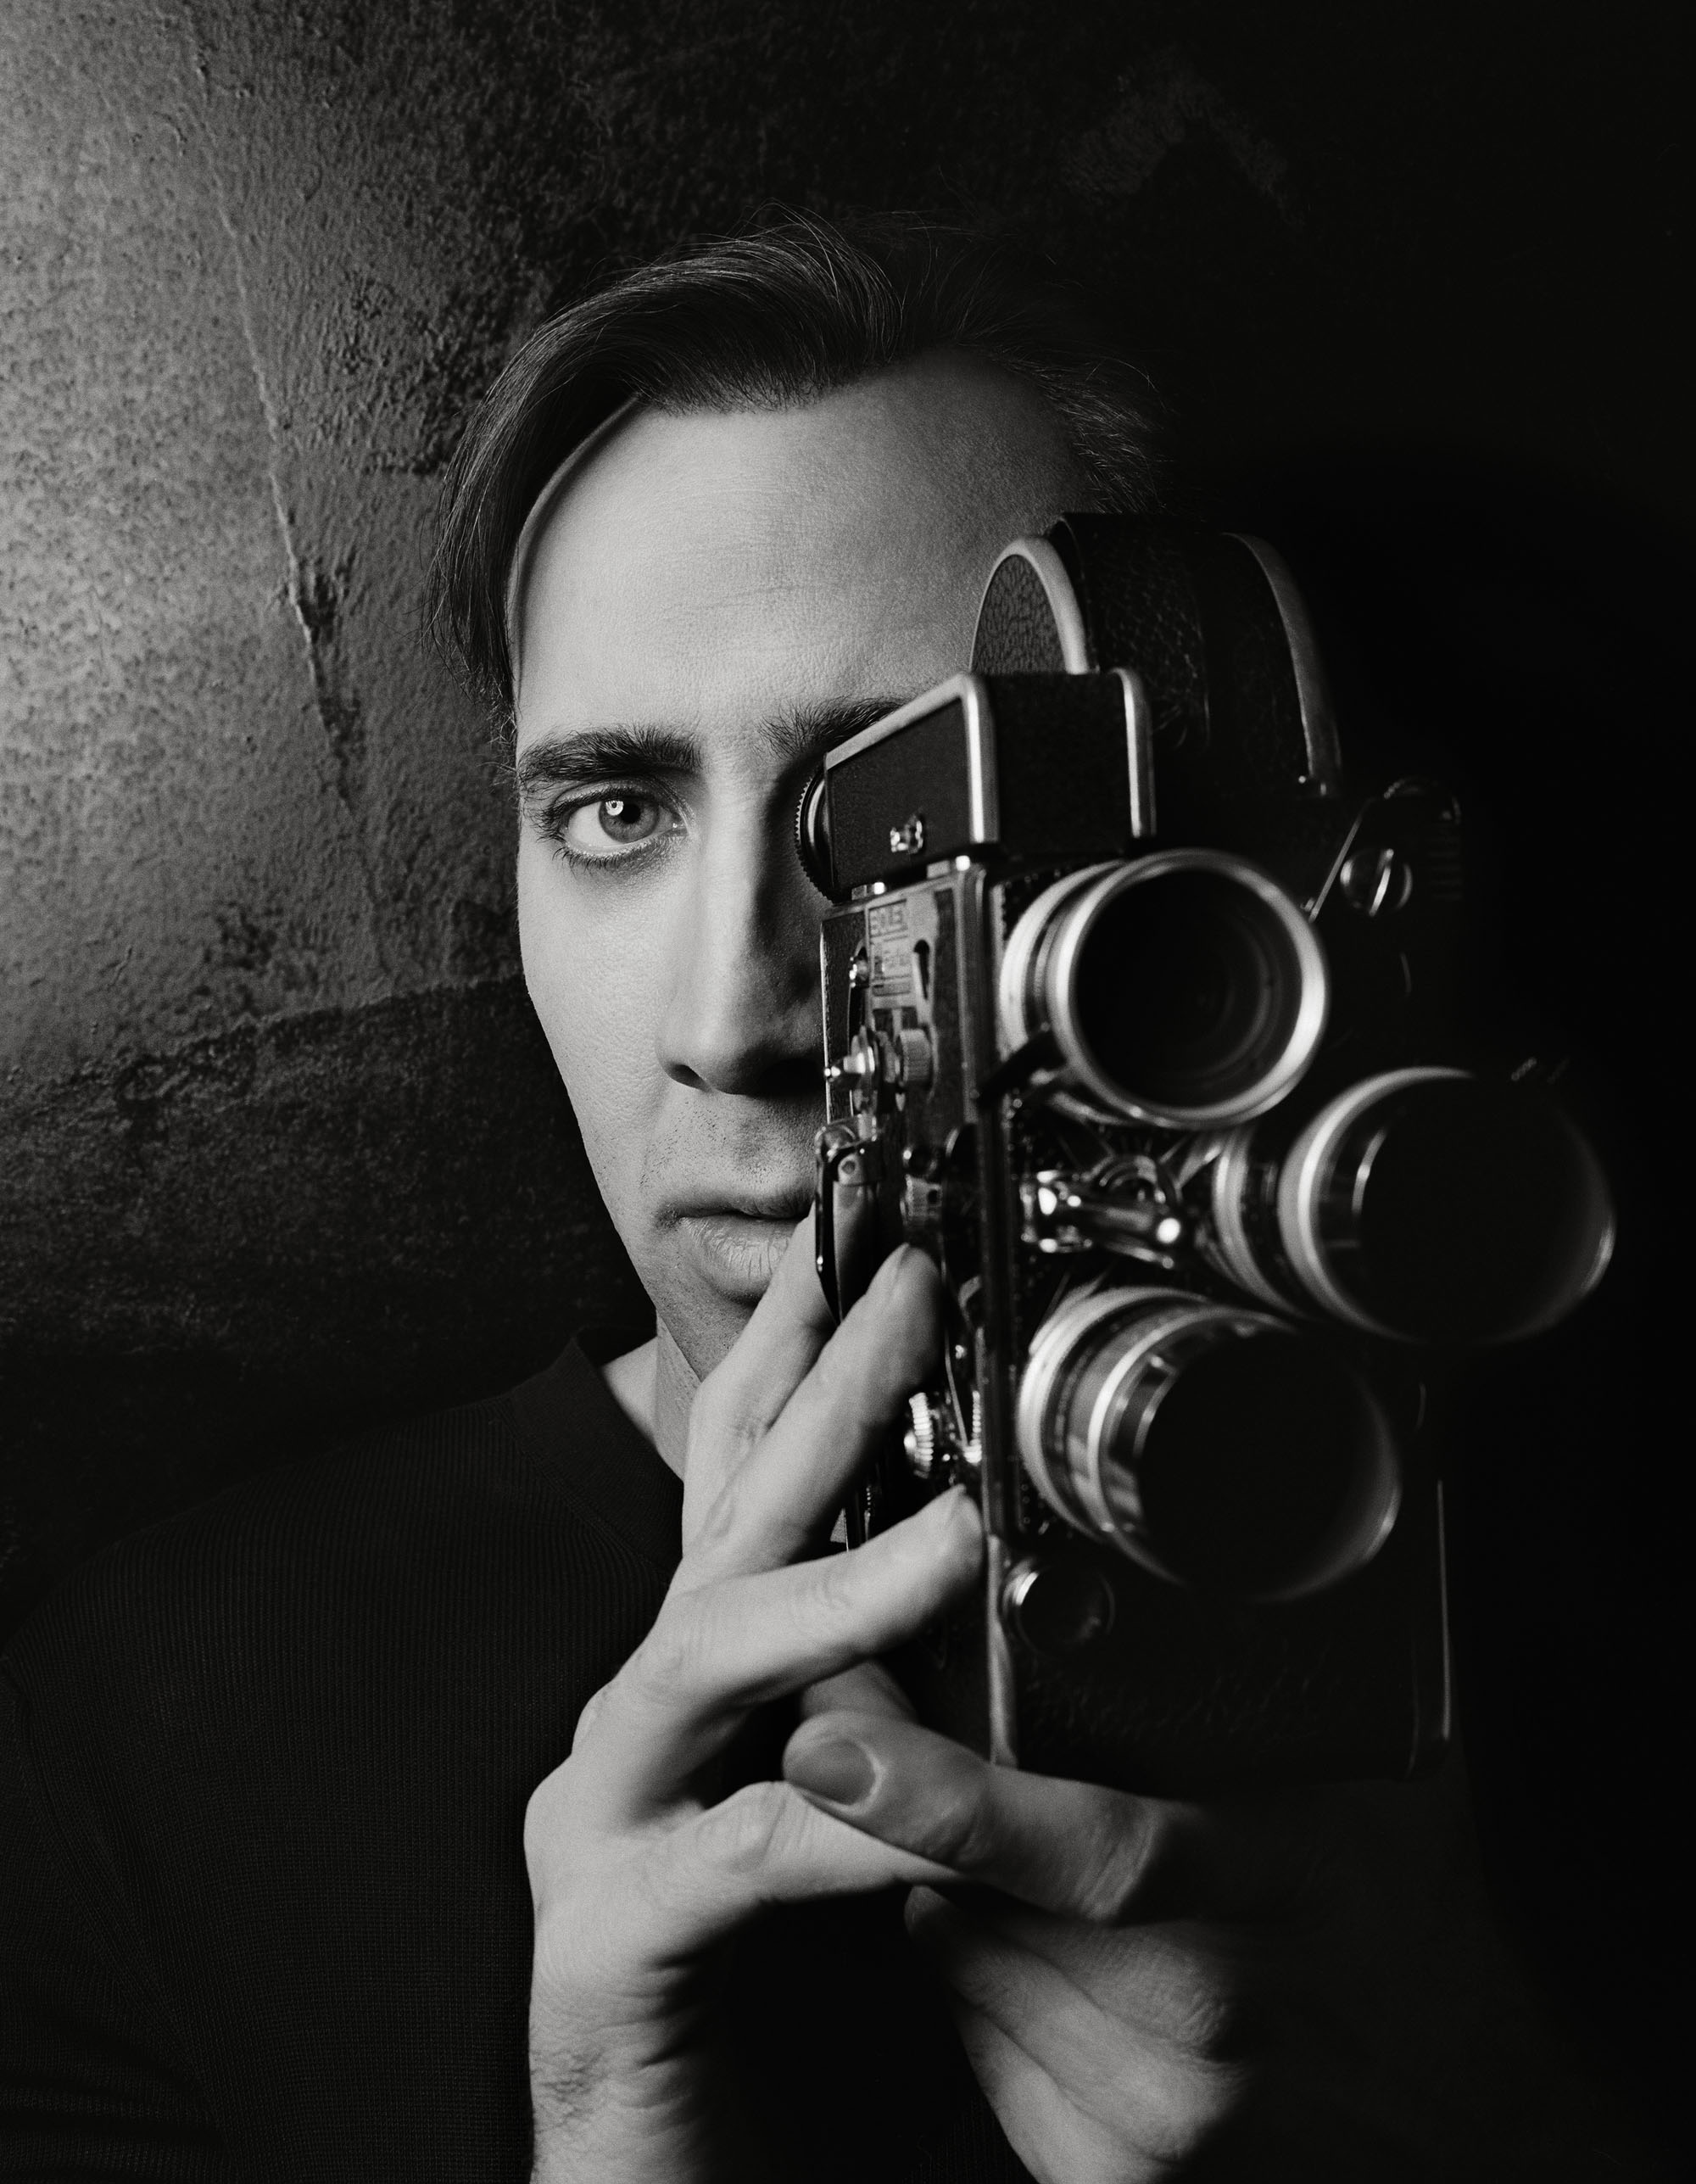 16_George Holz_Nicolas Cage_Badlands_New York, 1999_©George Holz.jpg